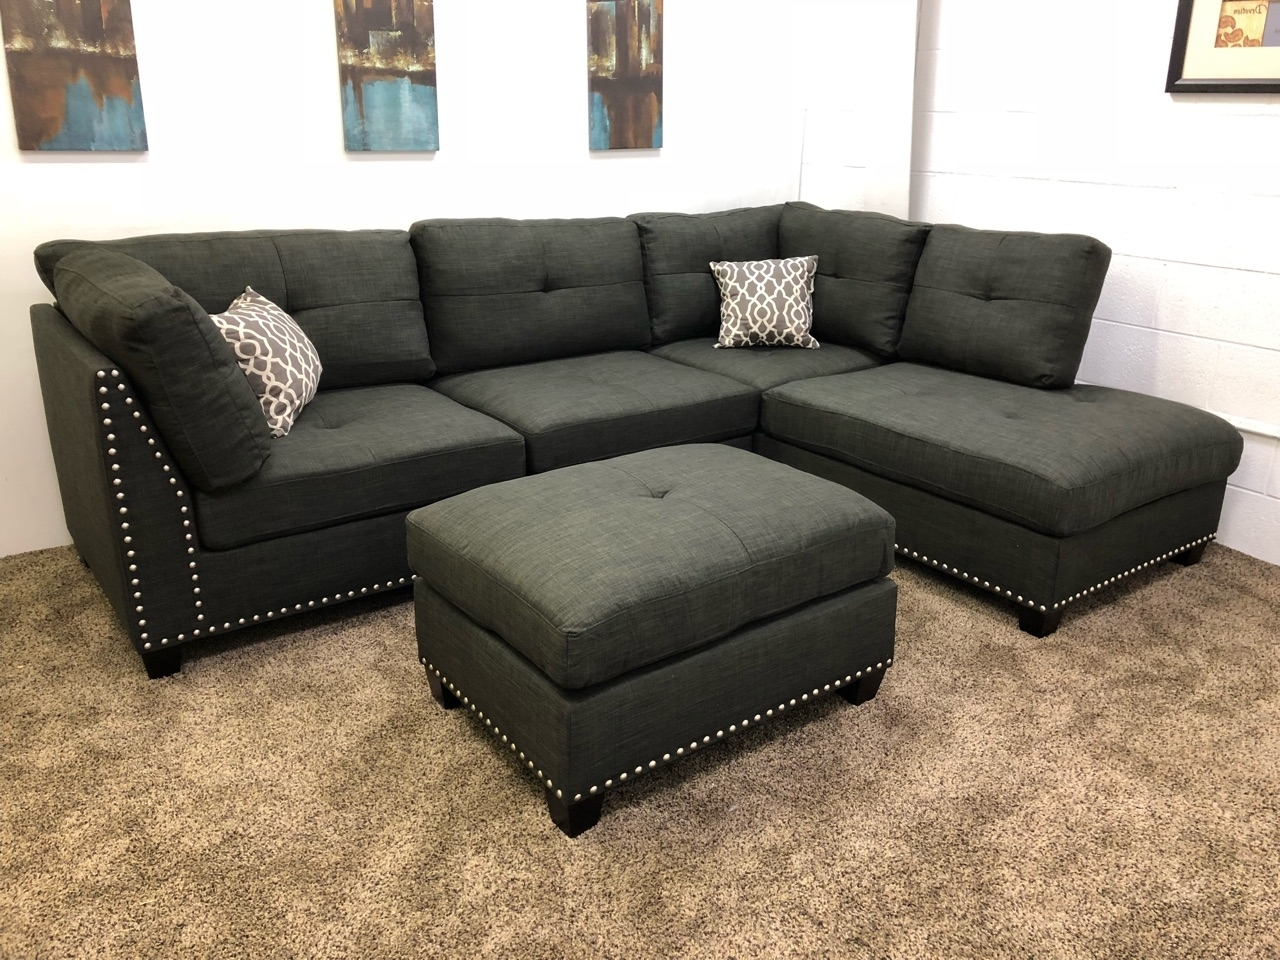 Sectional Sofas With Chaise Lounge And Ottoman In 2018 1 In Stock)#n753R  $250 Down  Black Linen Studded Linen Sectional (View 10 of 15)